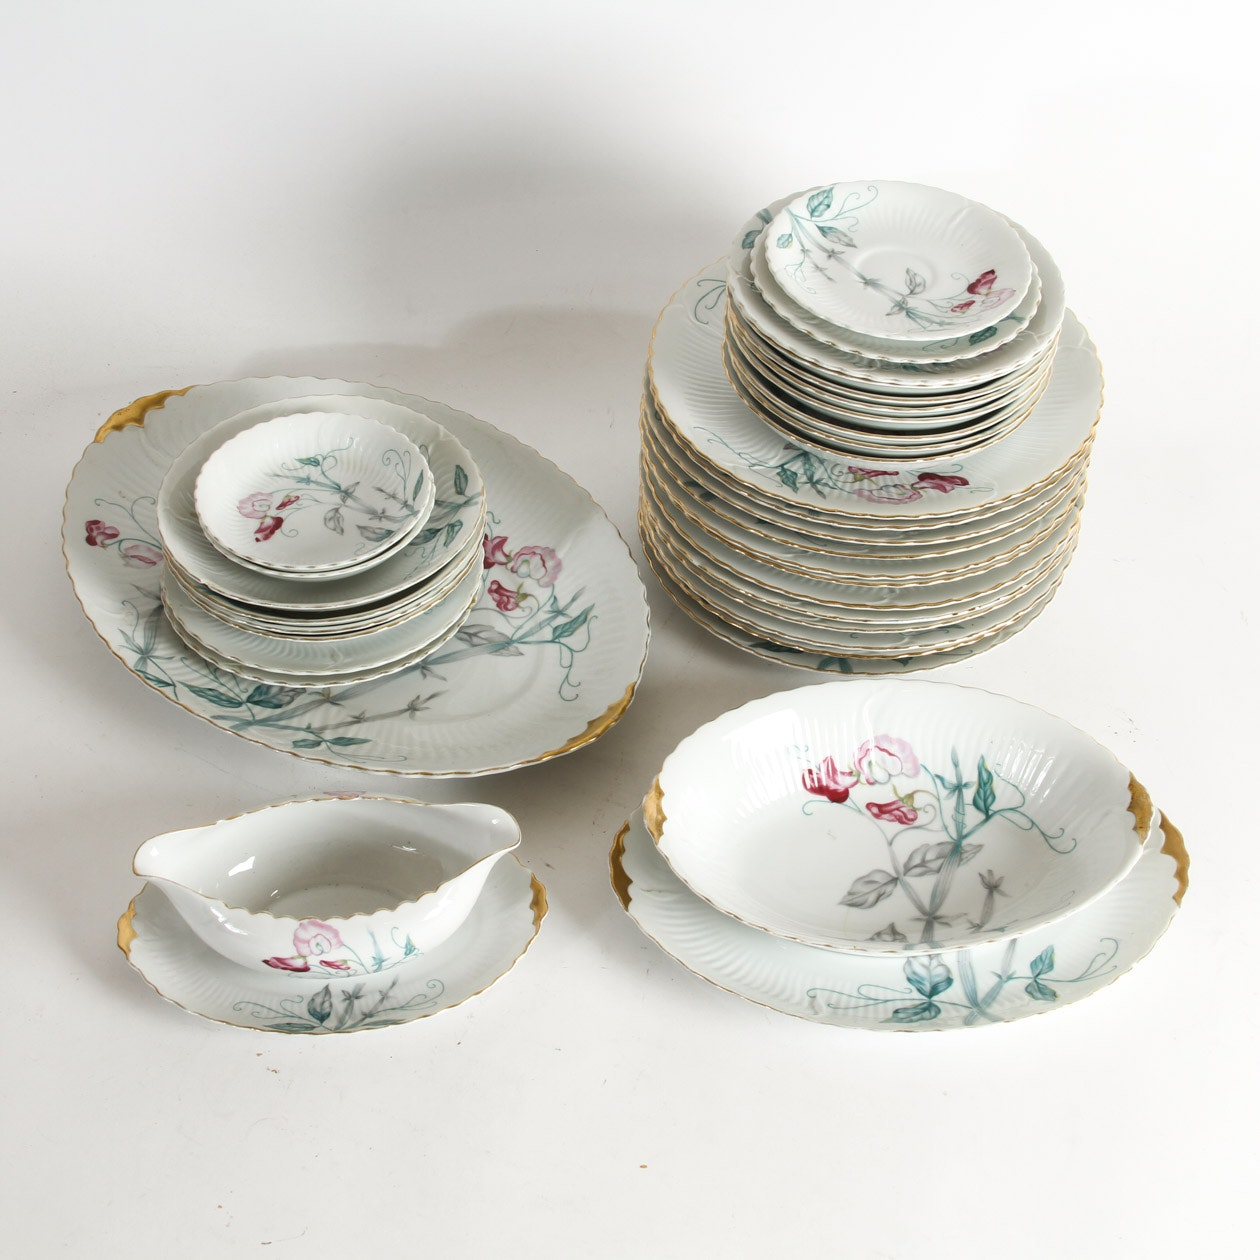 Set of Porcelain Dinnerware by Gold China